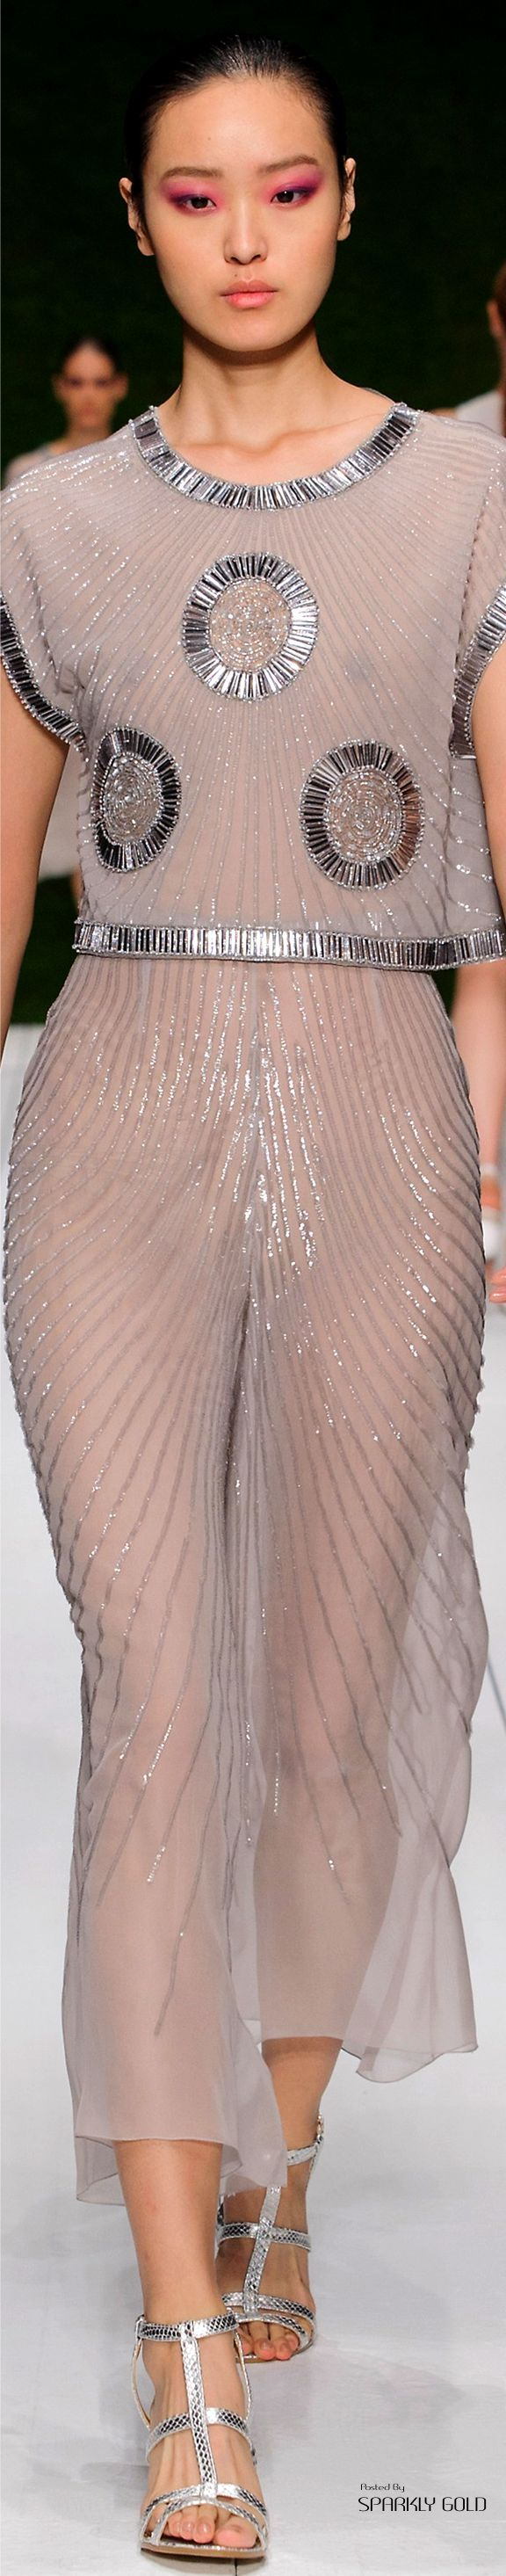 Laura Biagiotti Spring 2017 RTW ♛BOUTIQUE CHIC♛